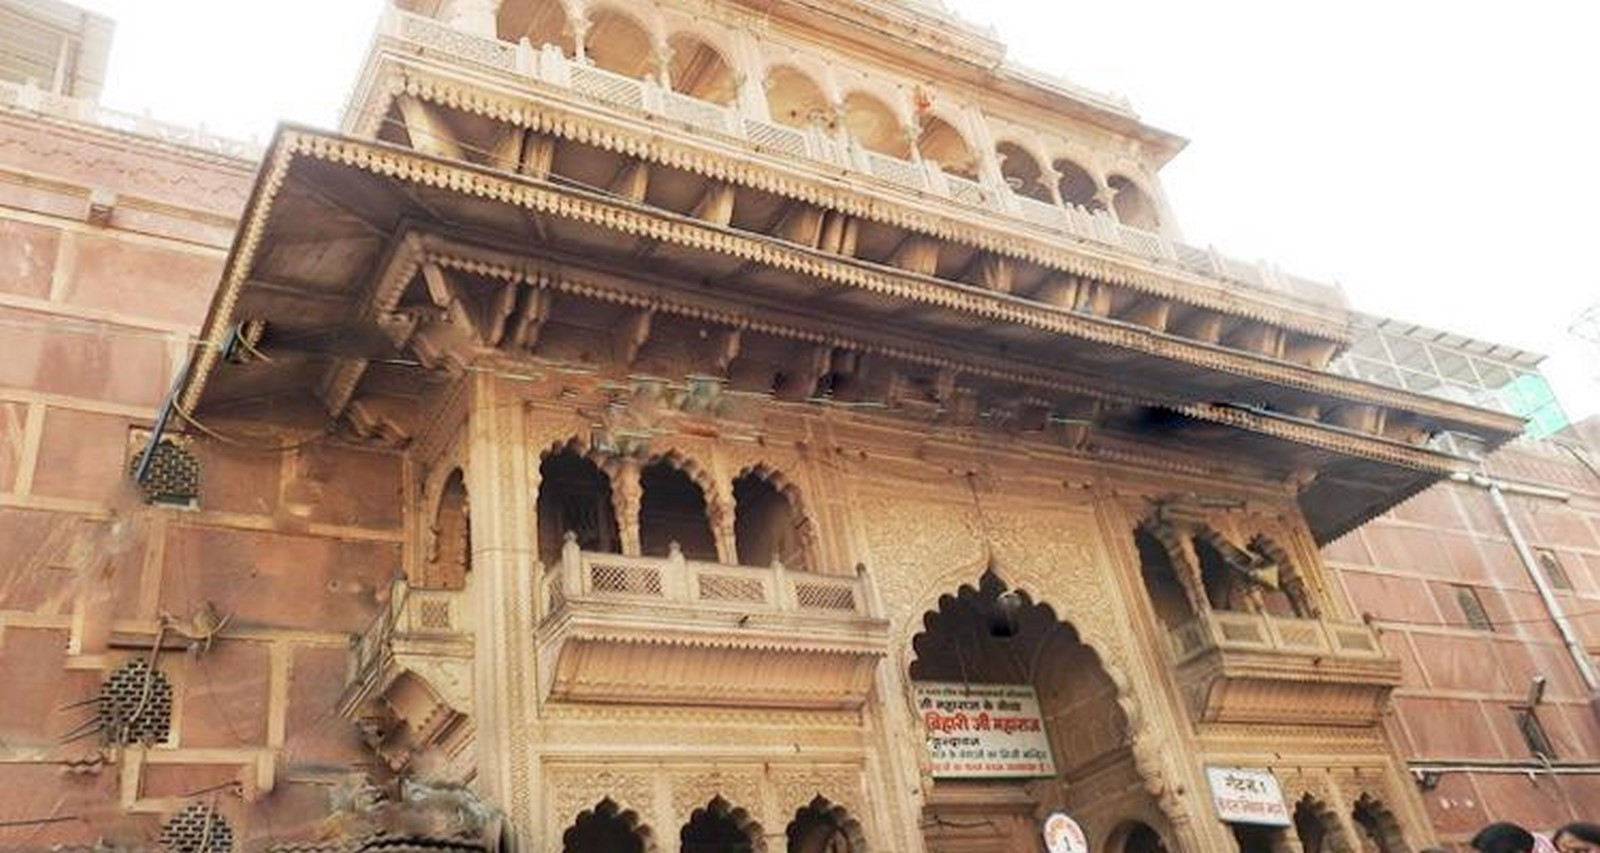 Architecture of Indian Cities: Vrindavan- City of widows - Sheet2